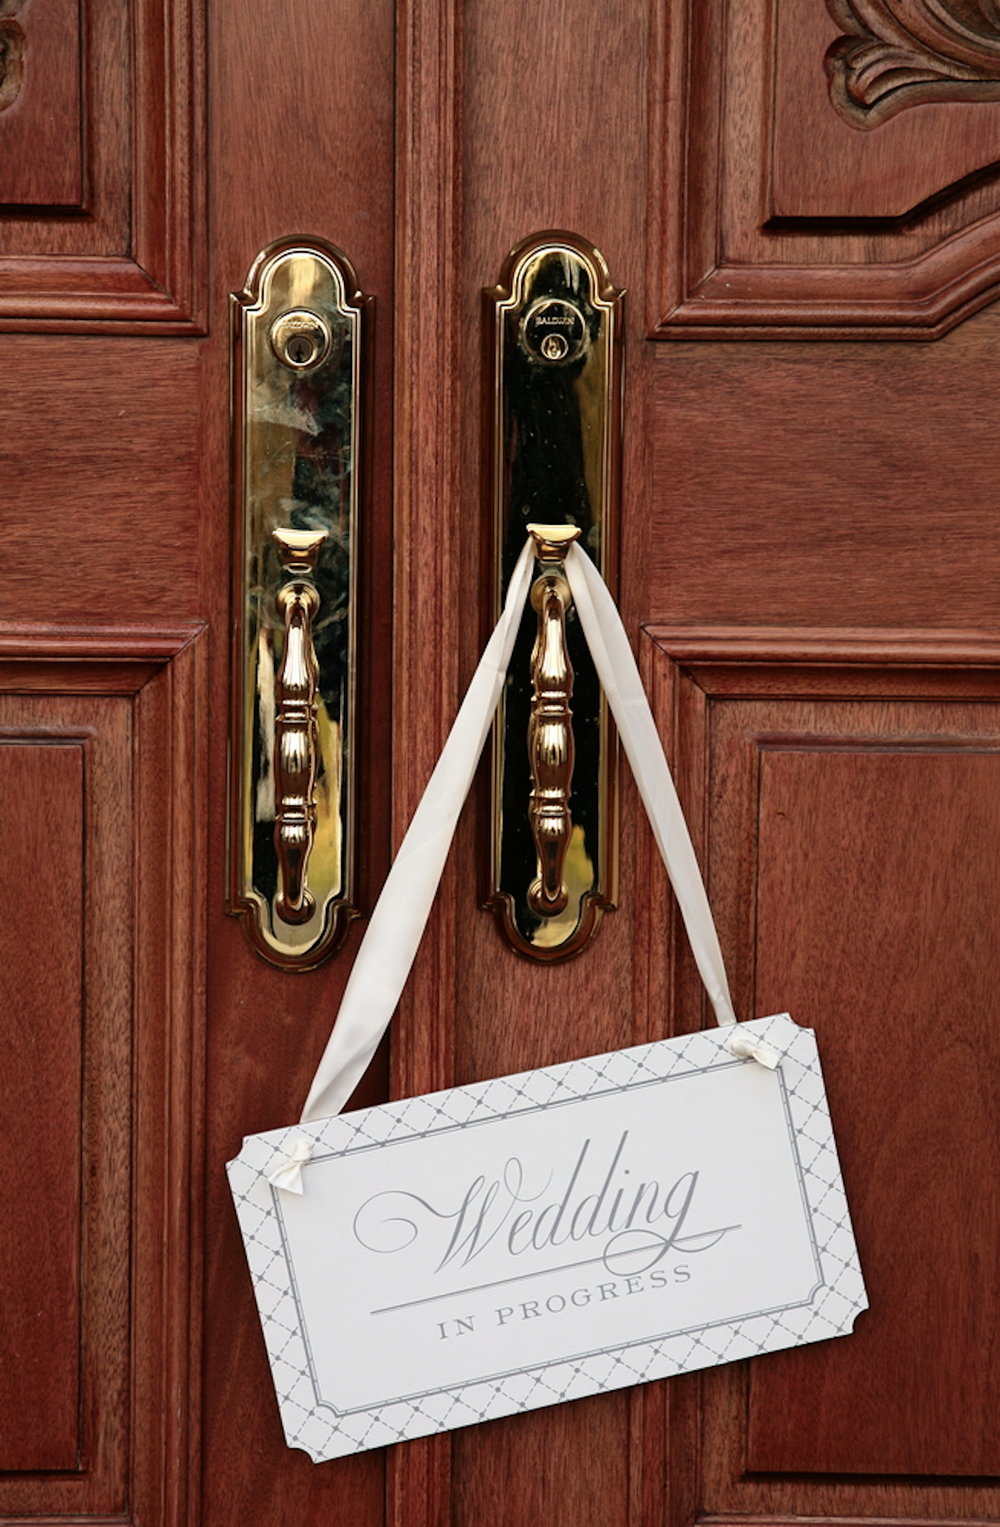 frontd-door-with-wedding-sign.JPG